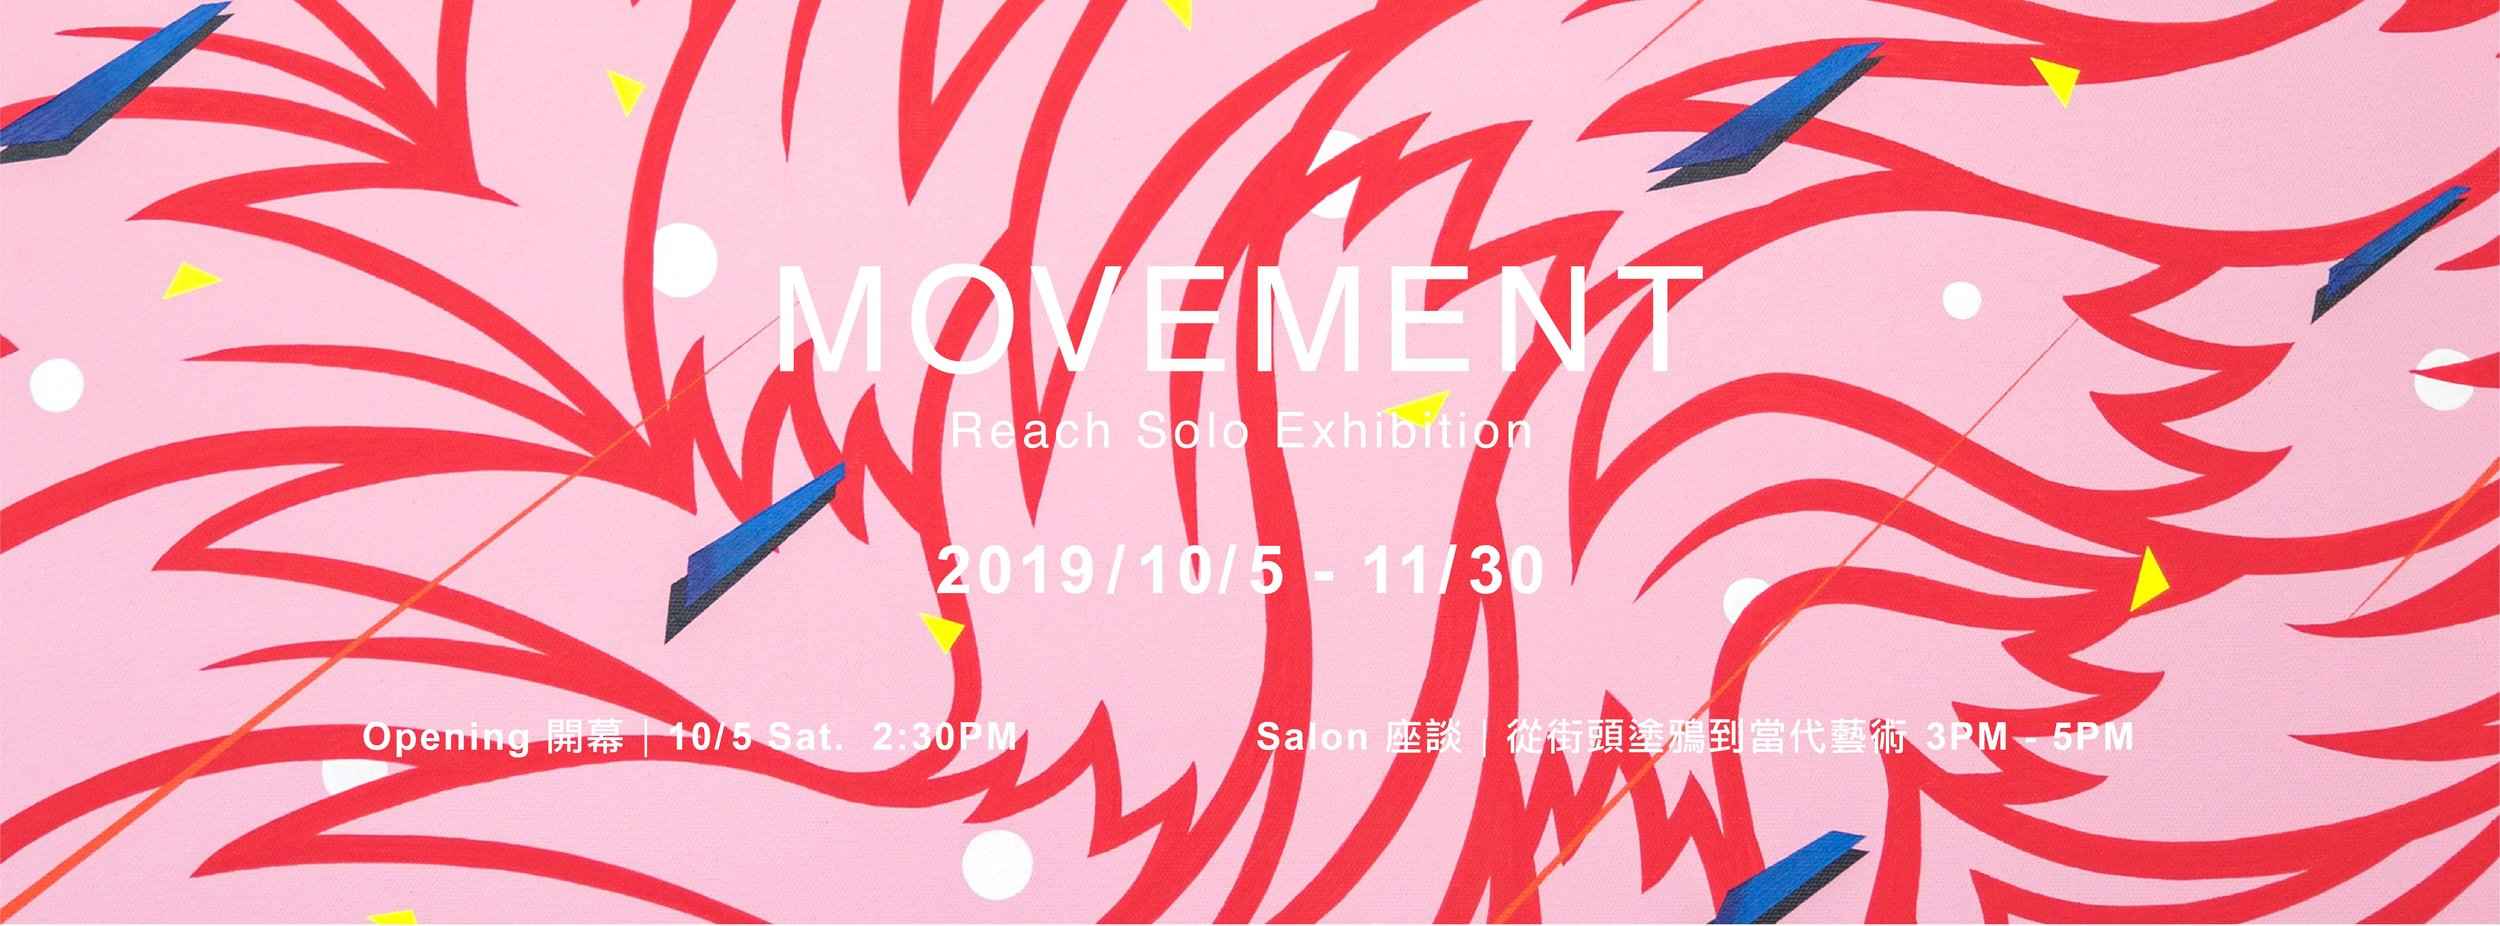 MOVEMENT-Reach Solo Exhibition.jpg